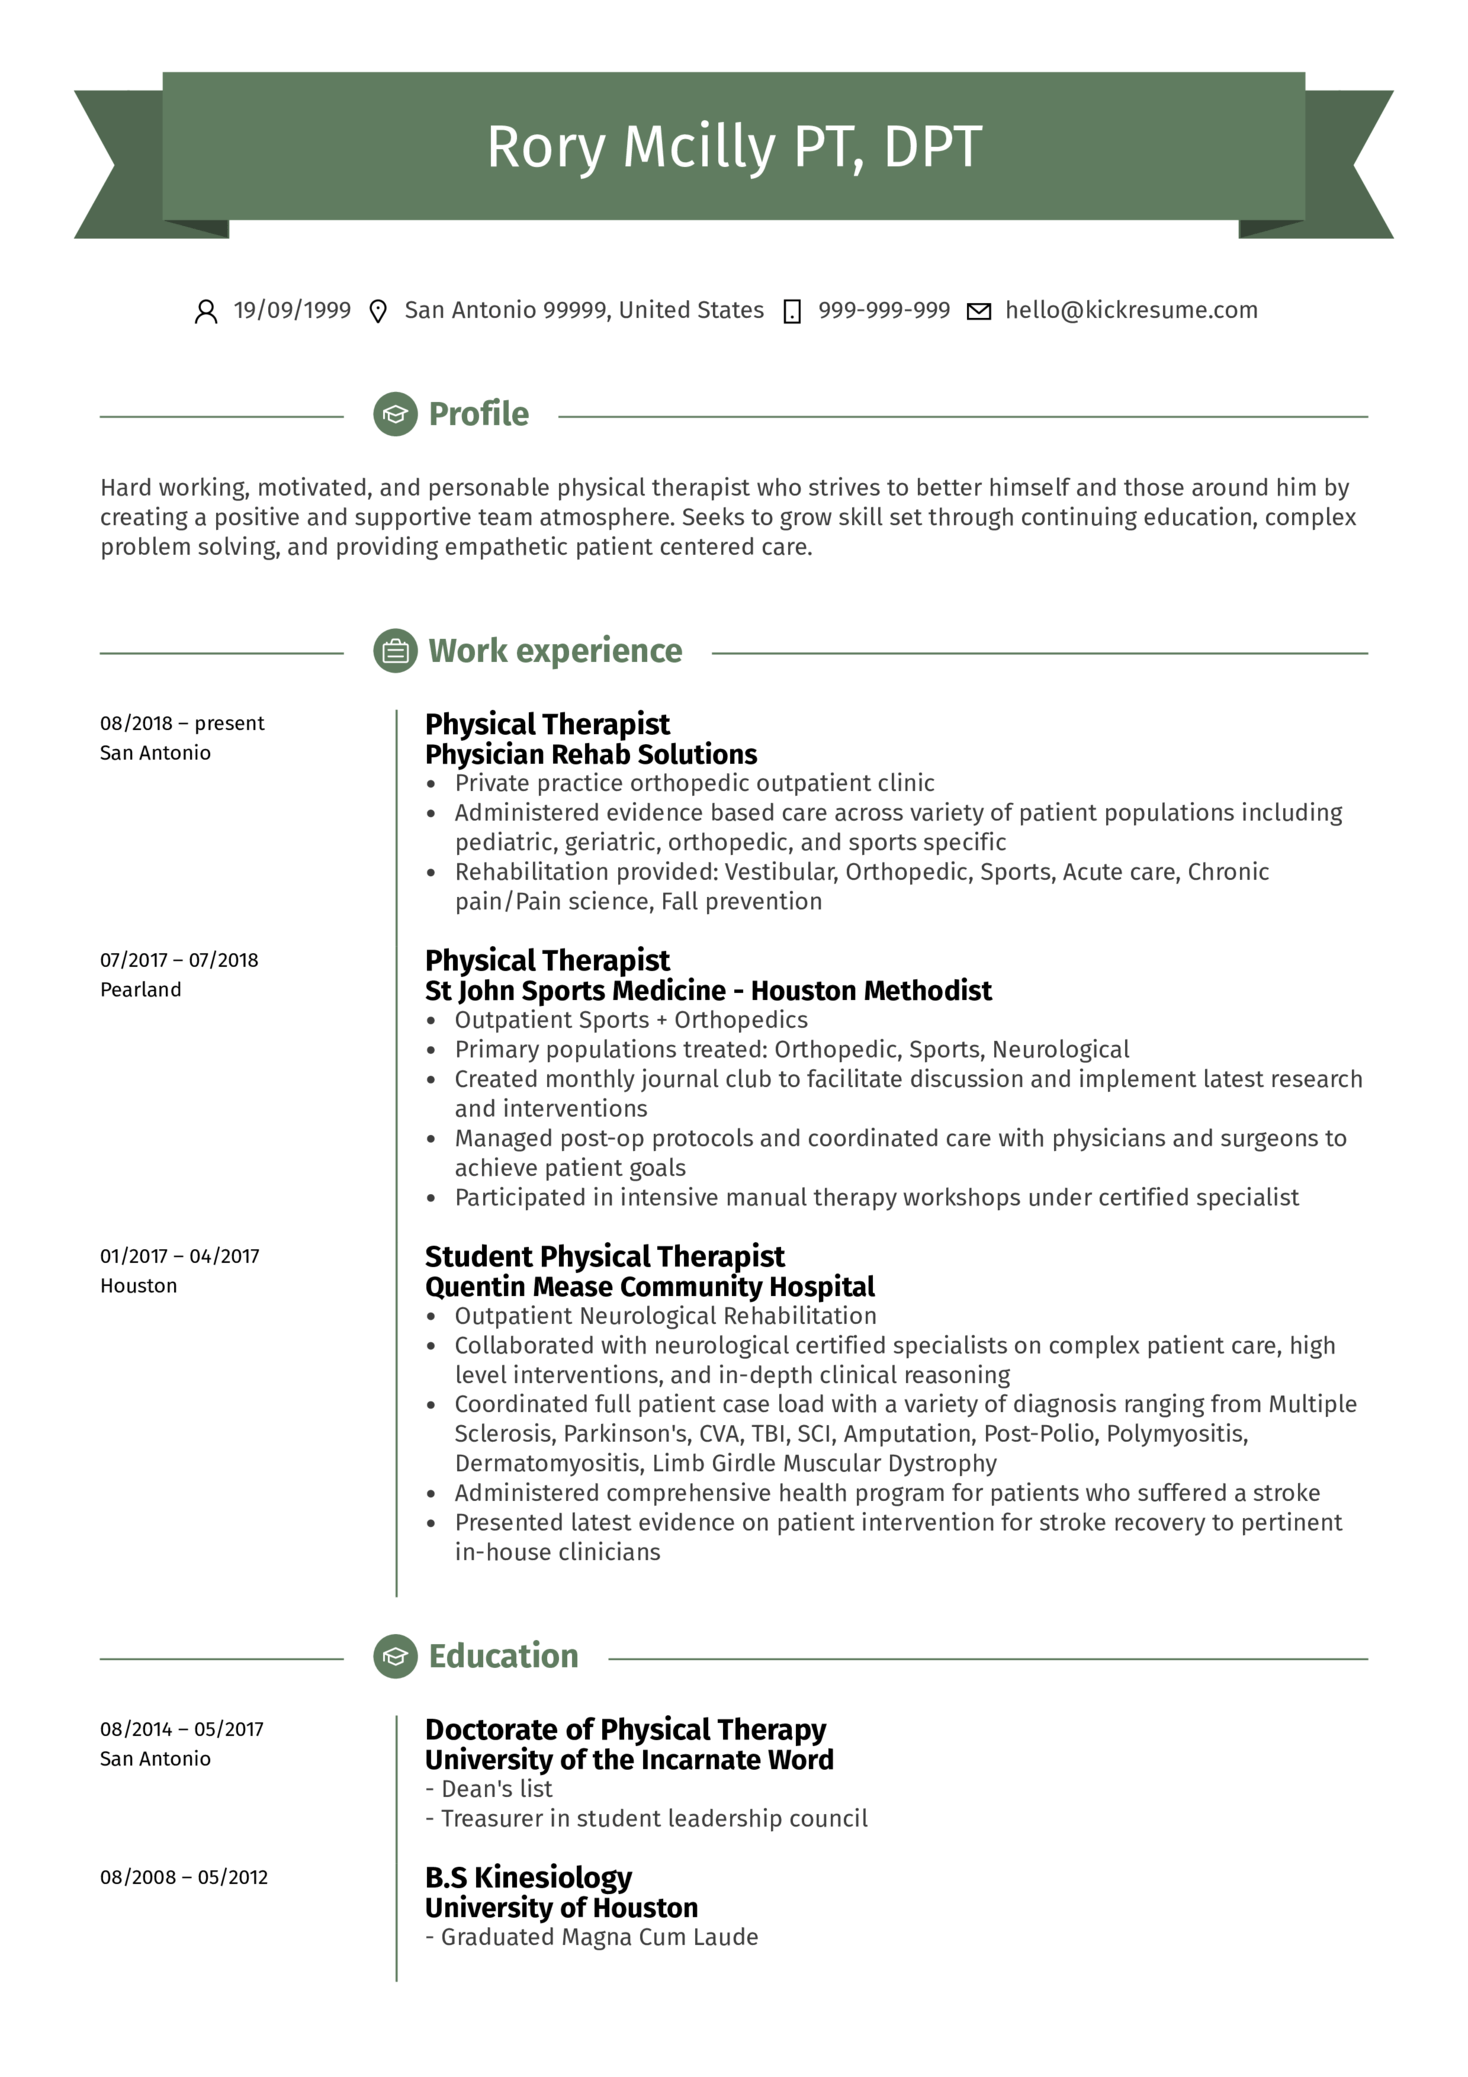 Physical Therapist in Pediatric Centre CV Example (Part 1)